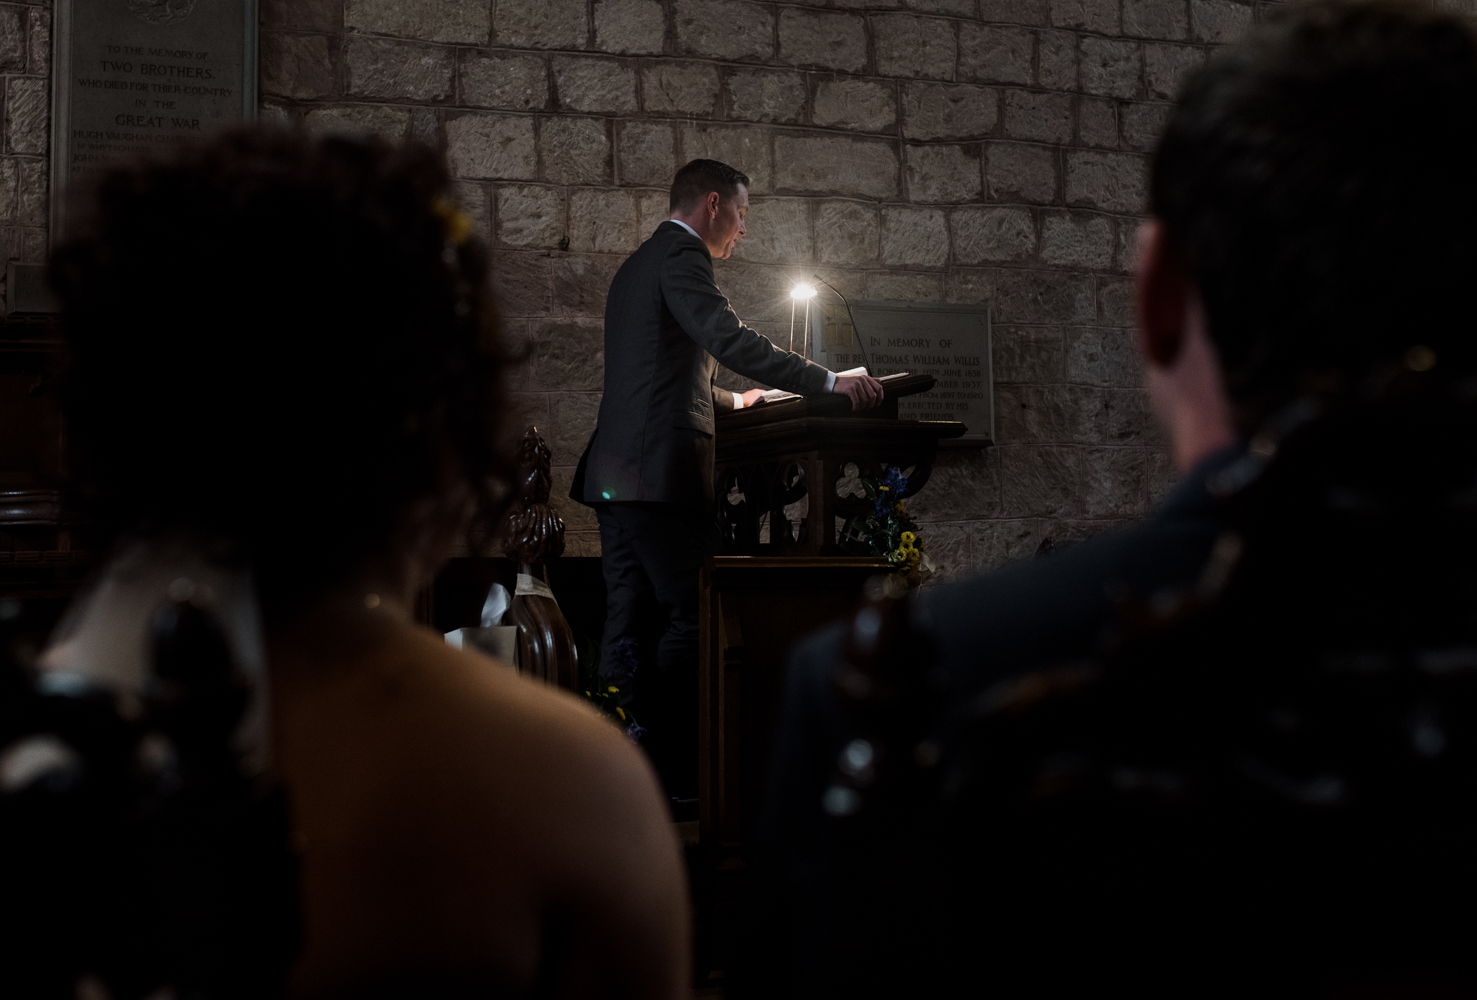 One of the male guests standing giving a bible reading